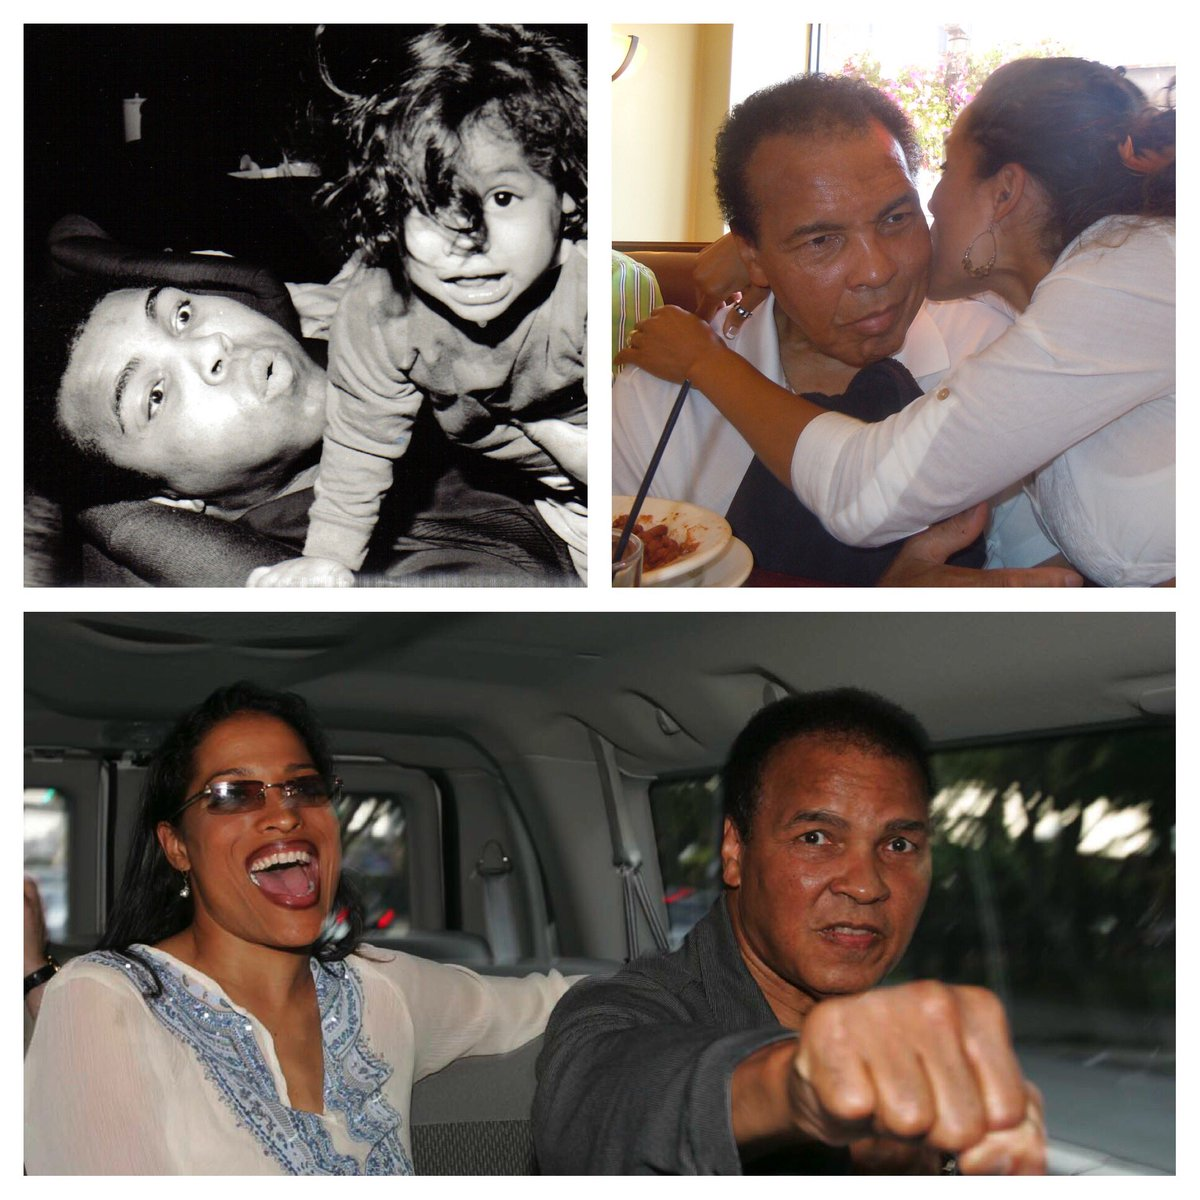 Happy 75th Birthday Daddy @MuhammadAli I miss you so much!!! 😘 https:/...